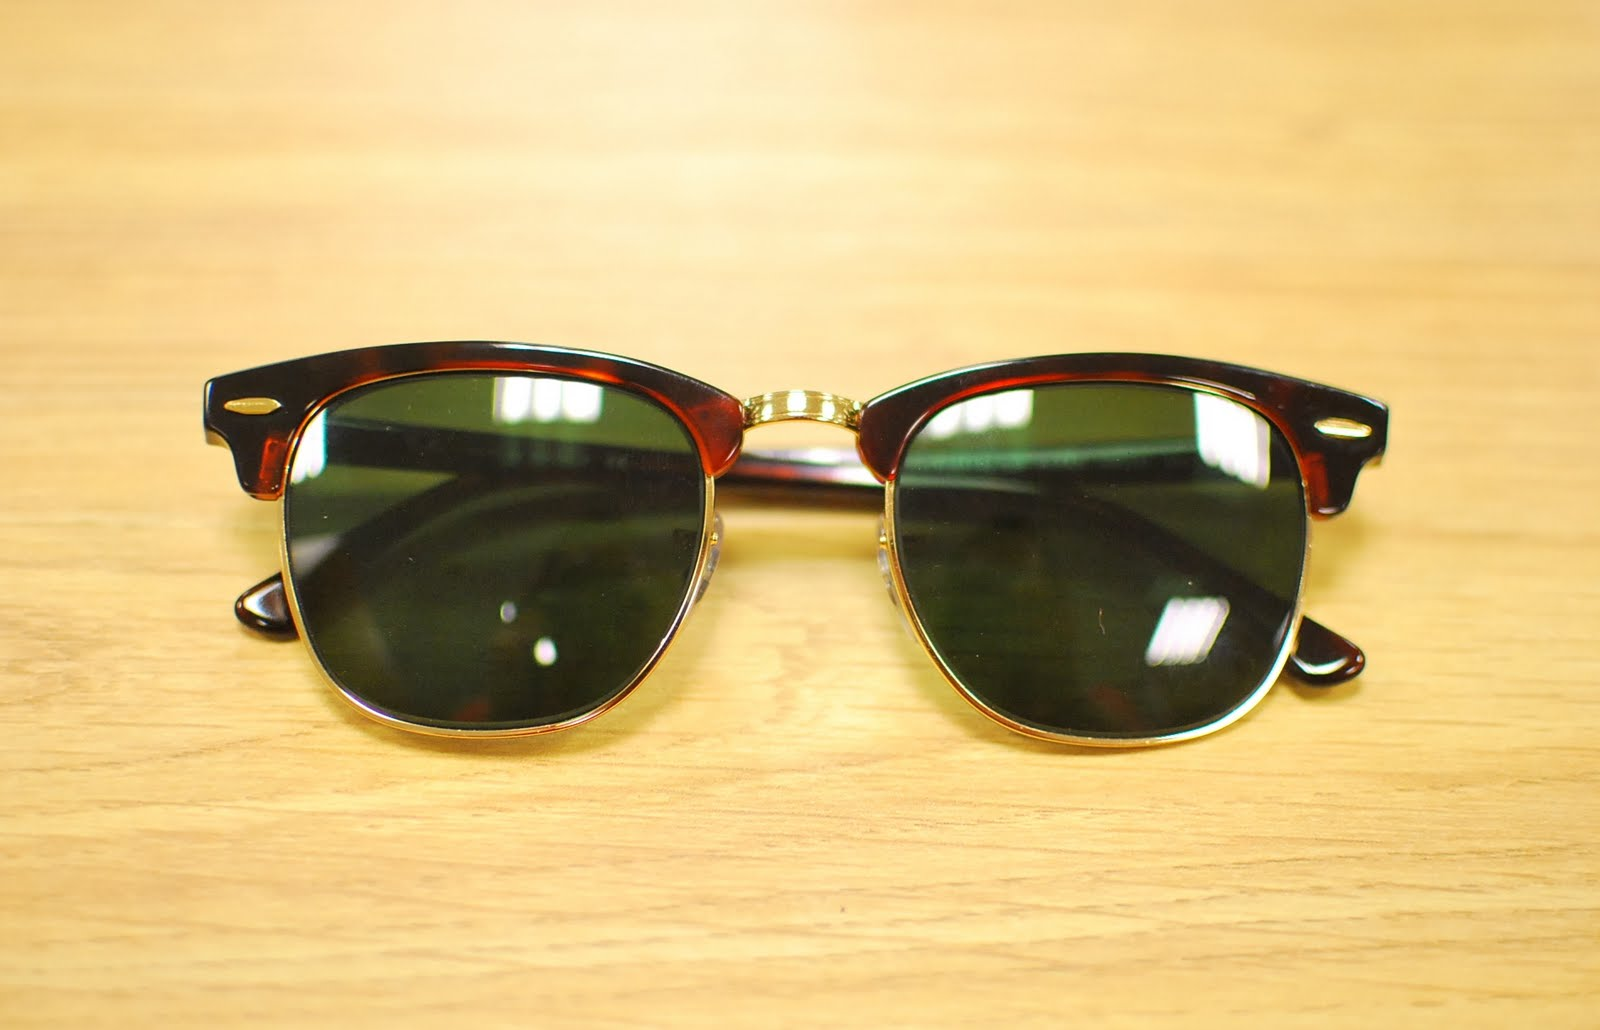 4e2a02bc5d0 Ray Ban Clubmaster Tortoise Shell Sunglasses 2017 « One More Soul